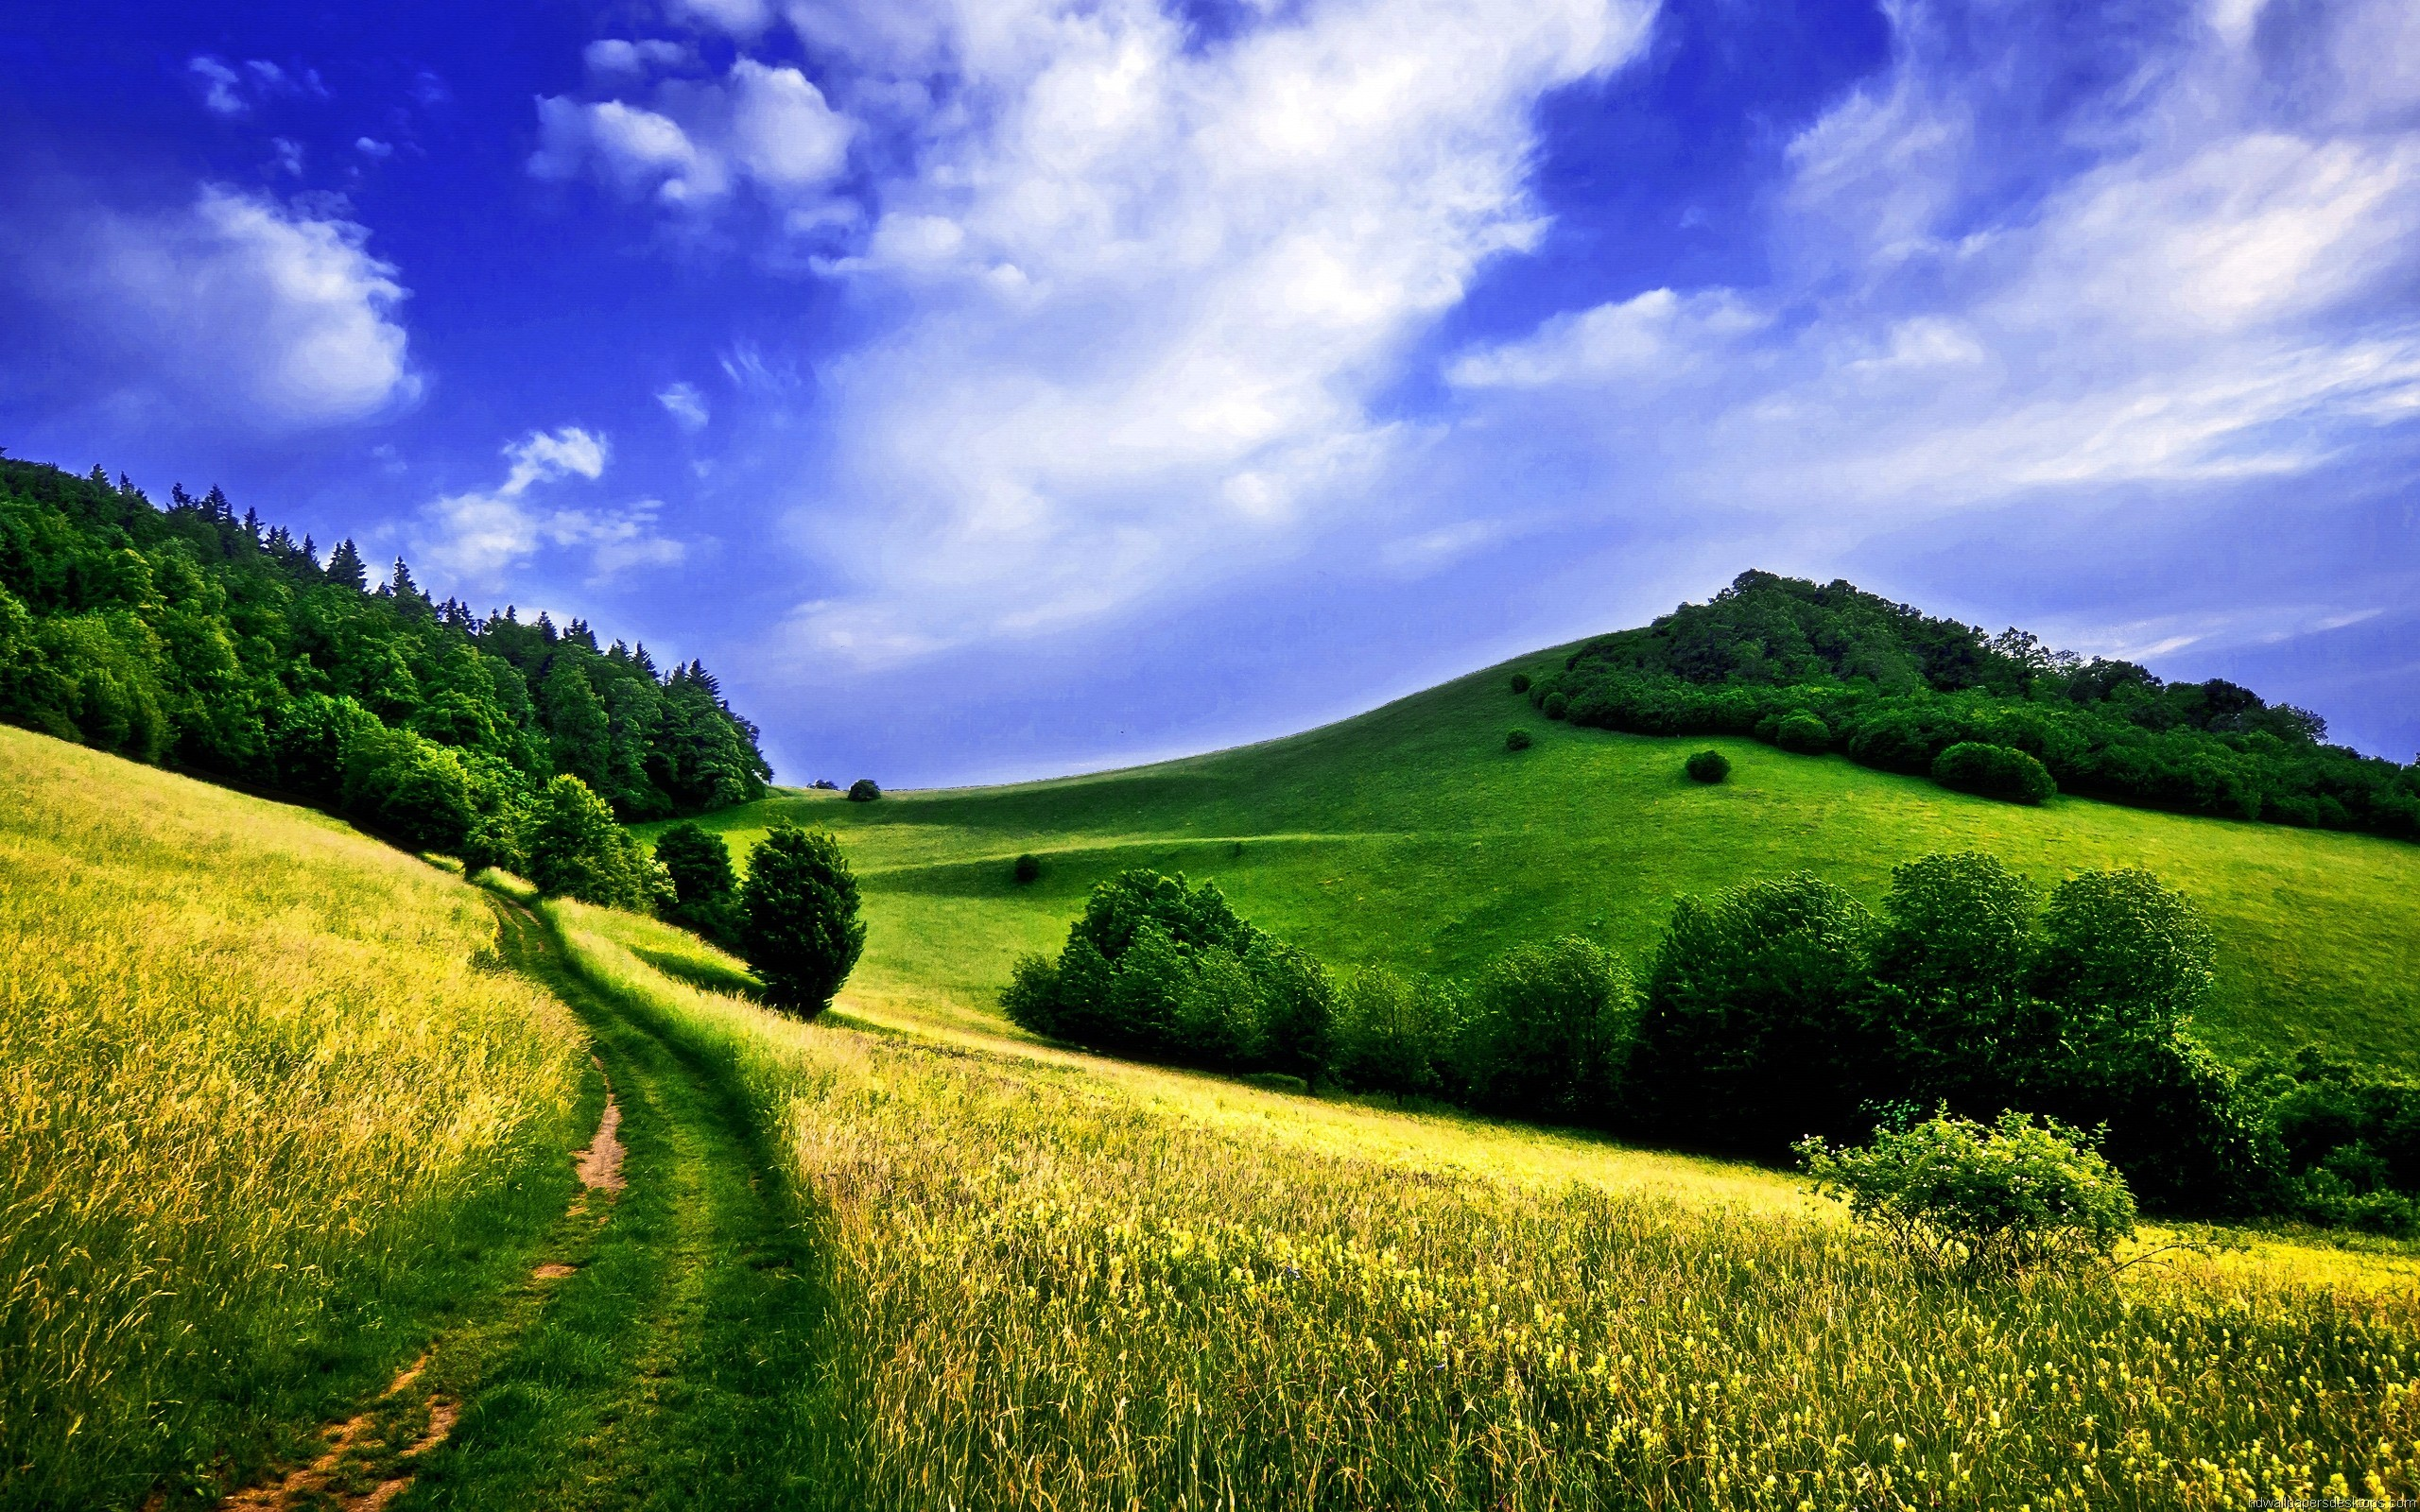 High Definition Nature Wallpaper 57 Images